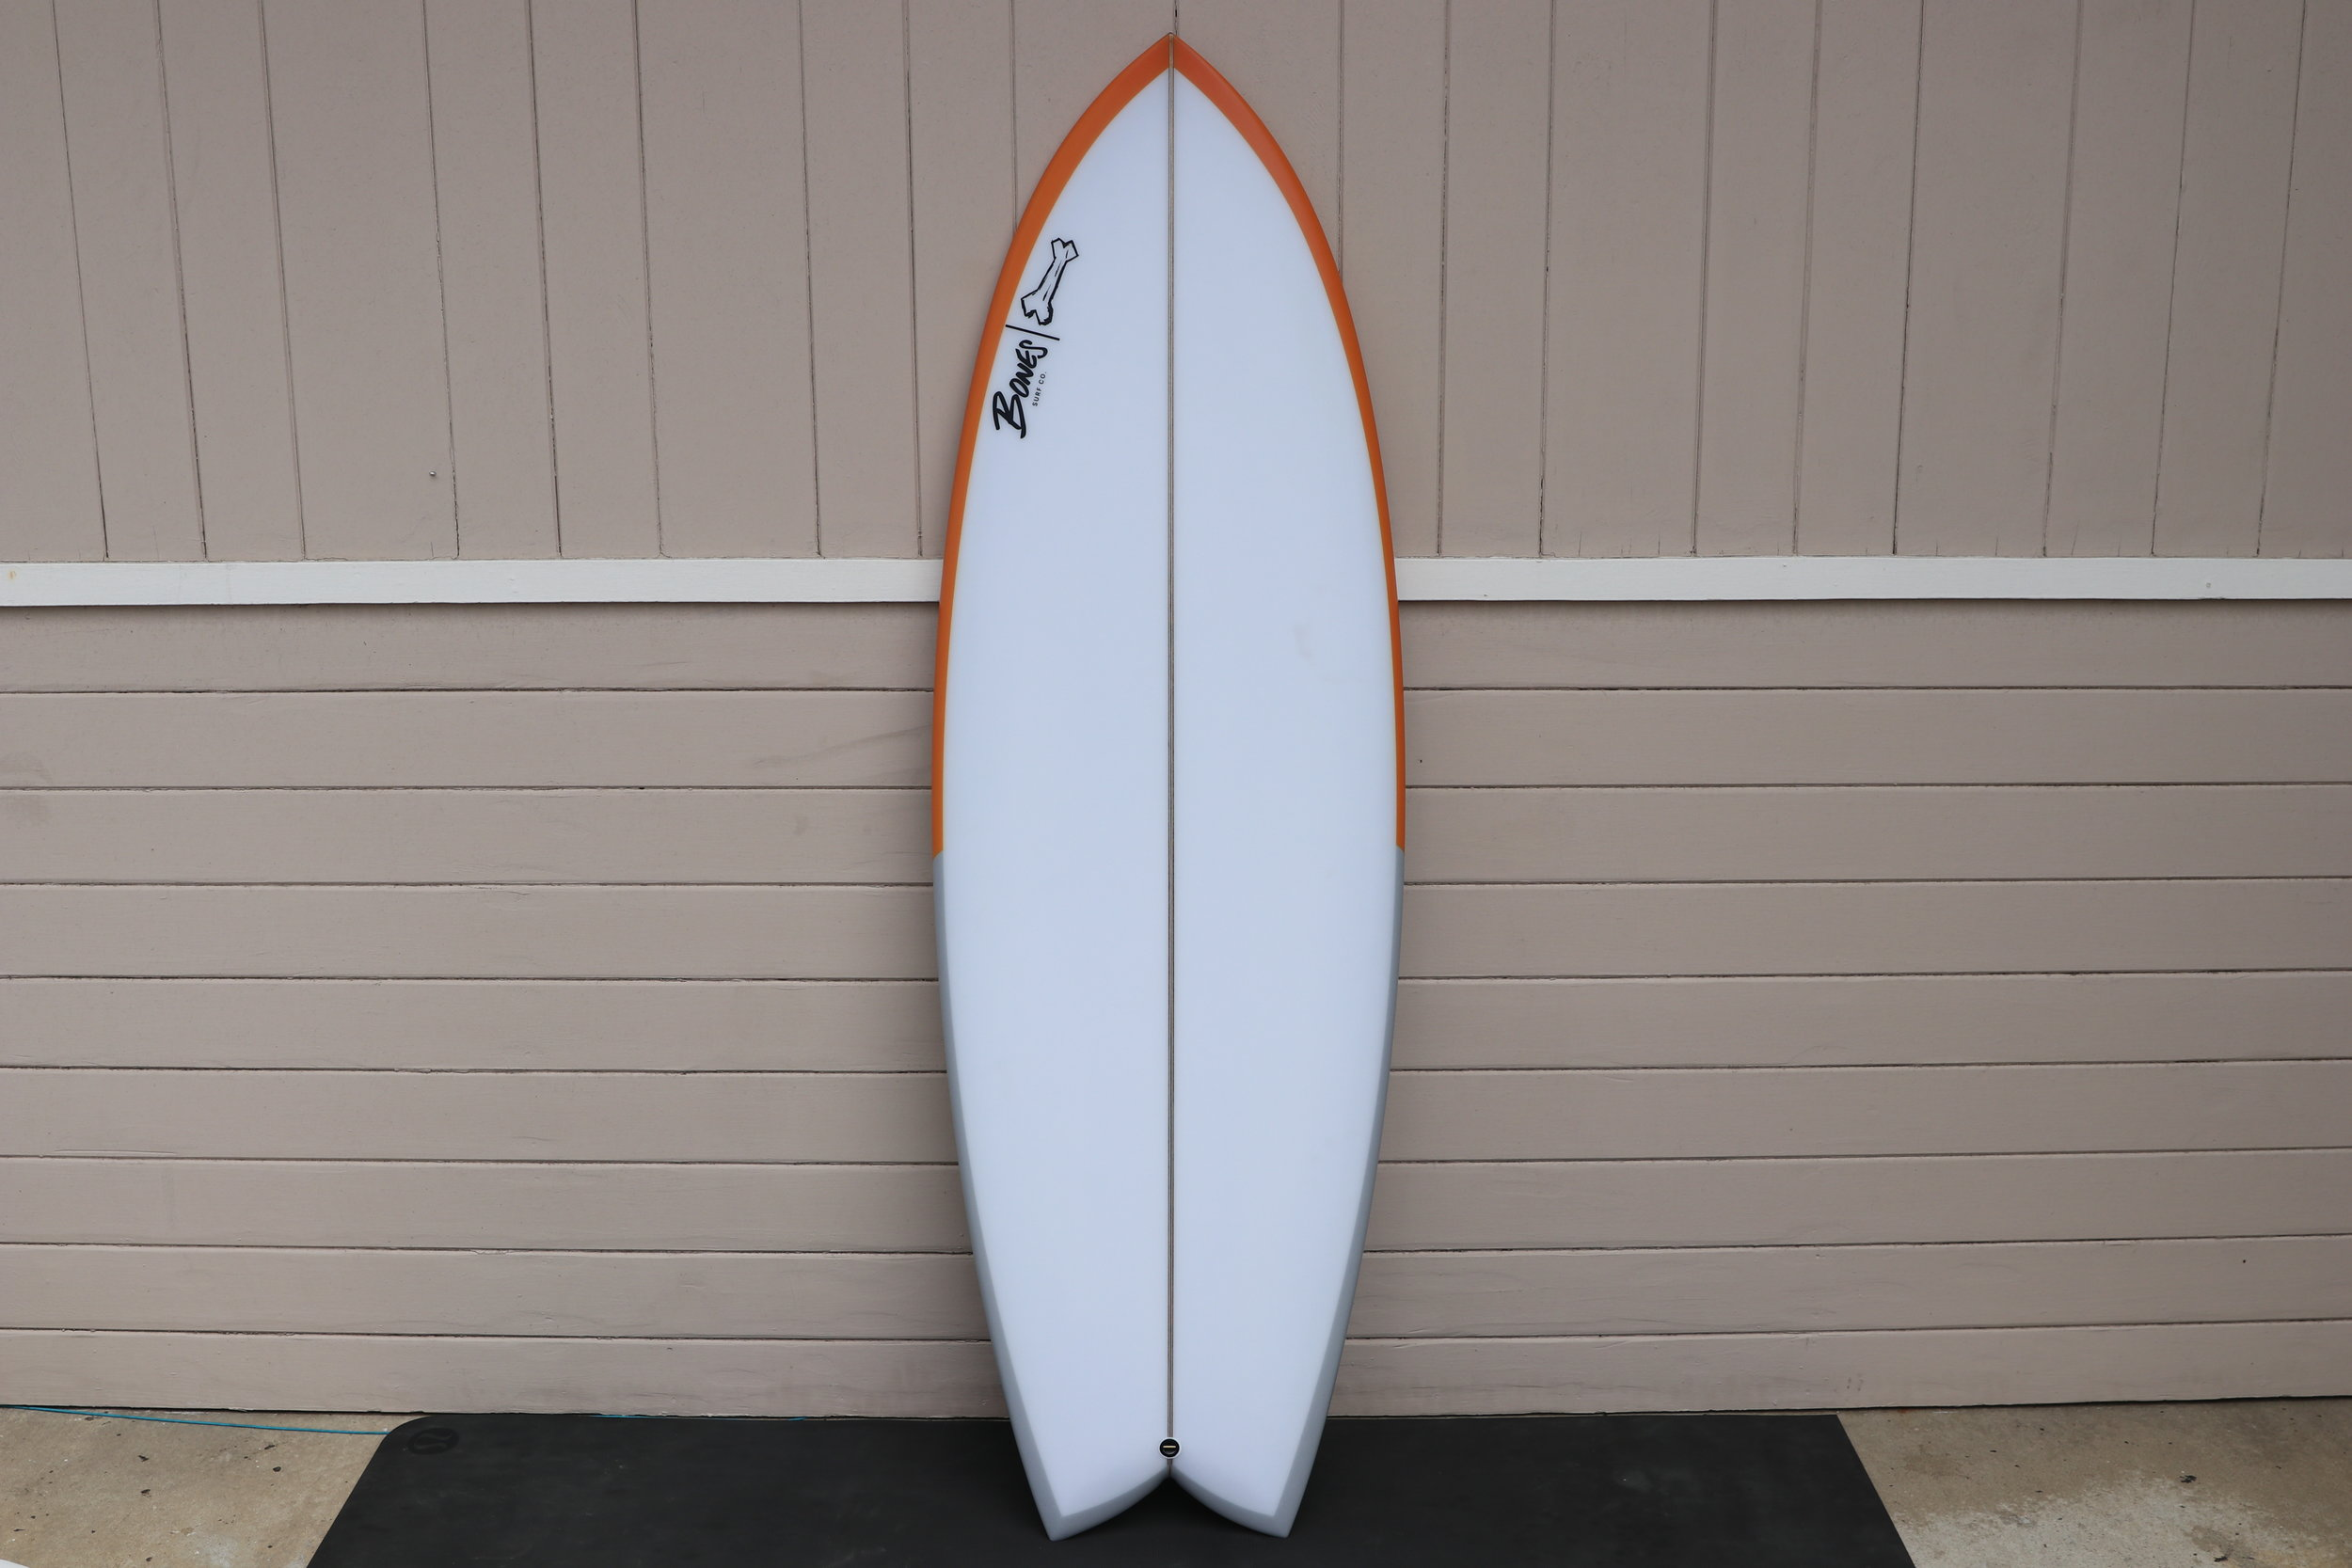 "Fish Taco  5'6 x 21.5 x 2.55  This Fish Taco is slightly modified from my go to model. The swallow tail is 3.25"" deep vs my normal 4.75"" and the wide point is pushed up about 1"". I also toed in the fin boxes at 1/4"" vs my normal 1/8"". We were thinking that we wanted to try and make the board a bit more maneuverable while sacrificing some drive. I usually recommend K1 or K2 keel fins for Tacos, but this one is strictly for Mark Richards style twinnies. I imagine Jazz riding this board when the waves are a bit smaller, or a nice long soft point break. I am excited to hear how it works on all those right points on the Gold Coast."